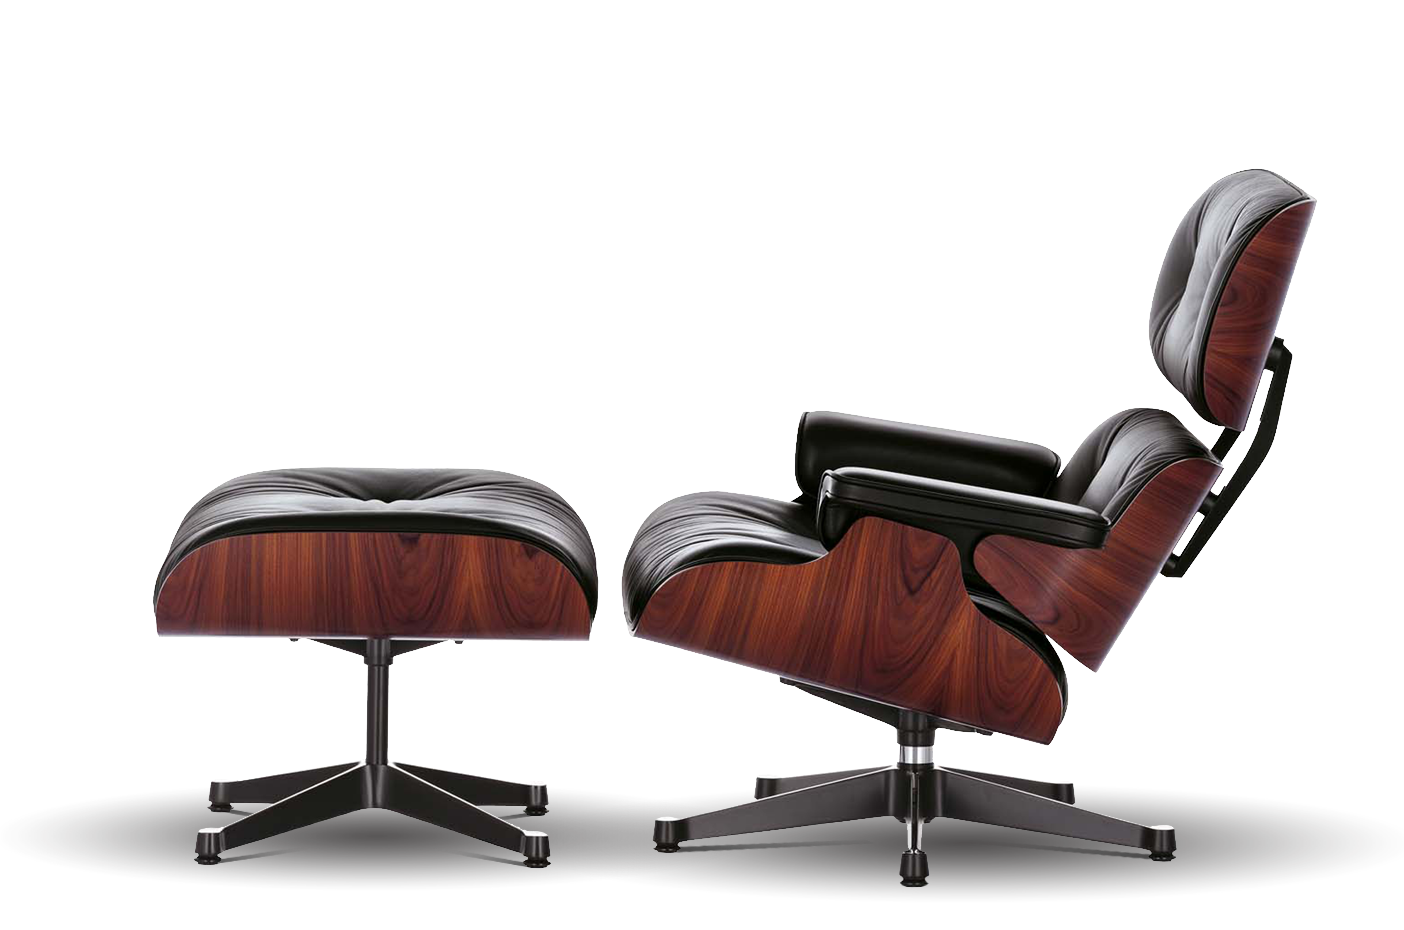 eames_lounge_chair_vitra-charles-ray-eames_0